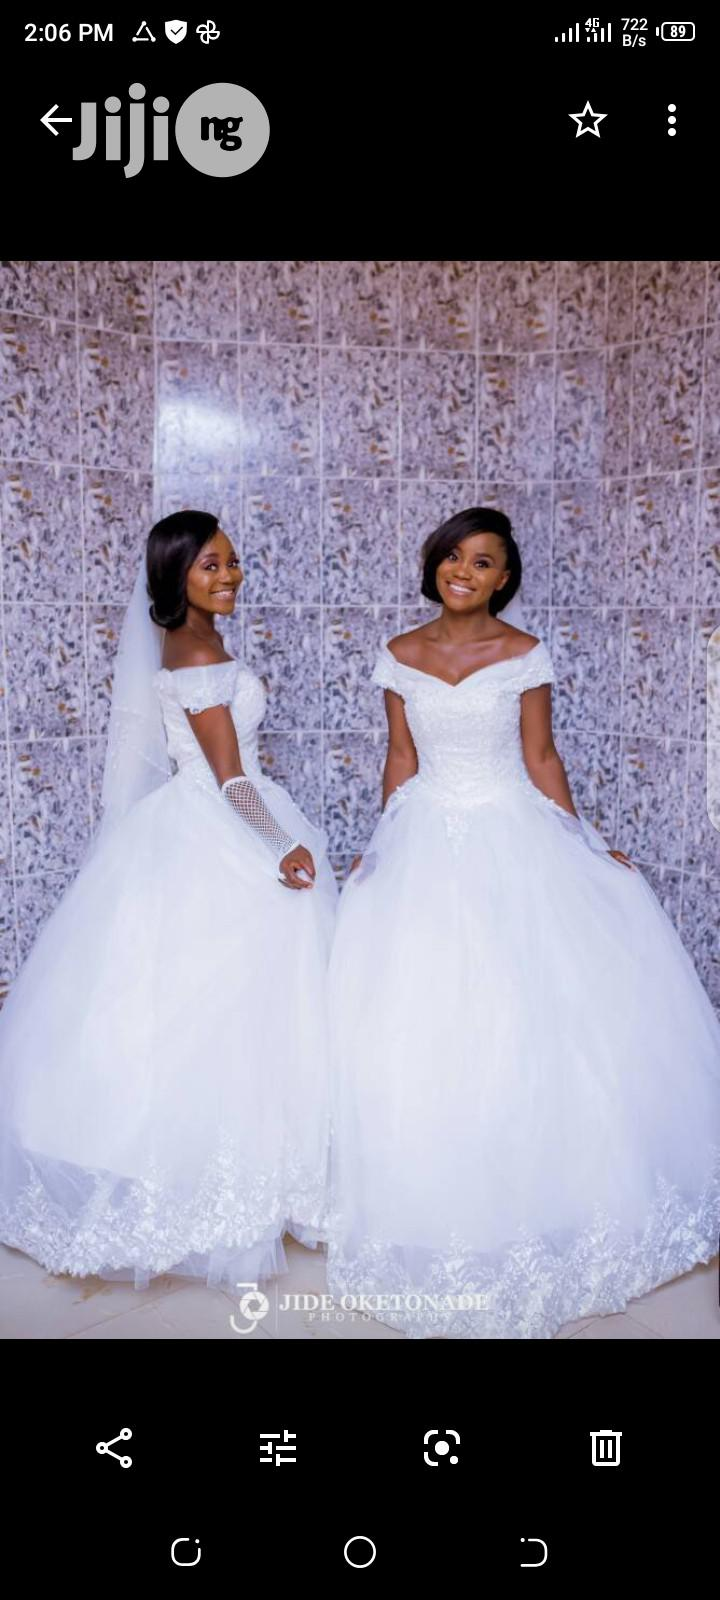 Archive: I Have Two (2) Wedding Gowns to Sell